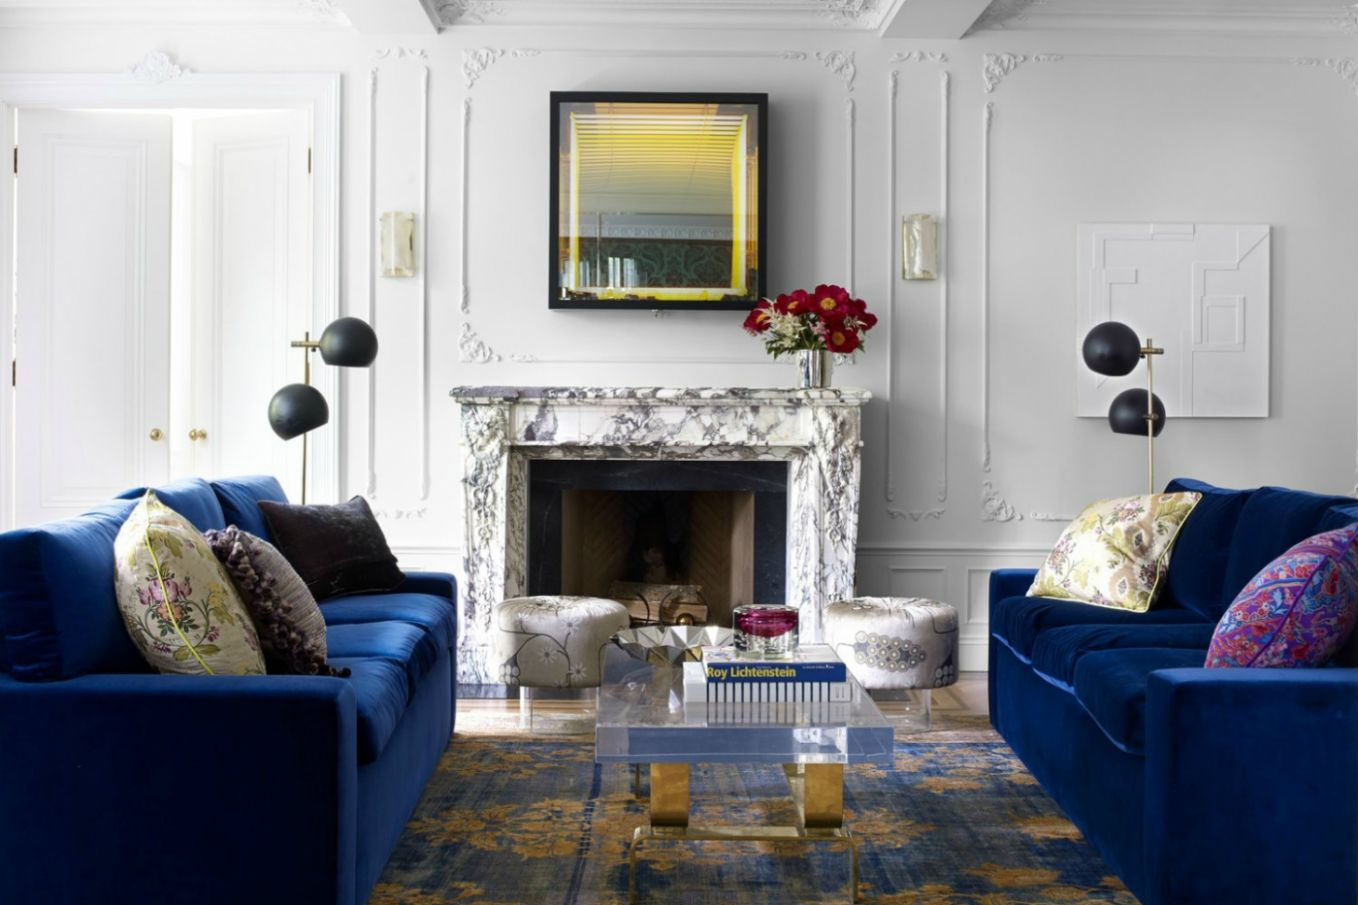 Top 8 Blue Living Room Designs by Best Interior Designers - living room ideas in blue